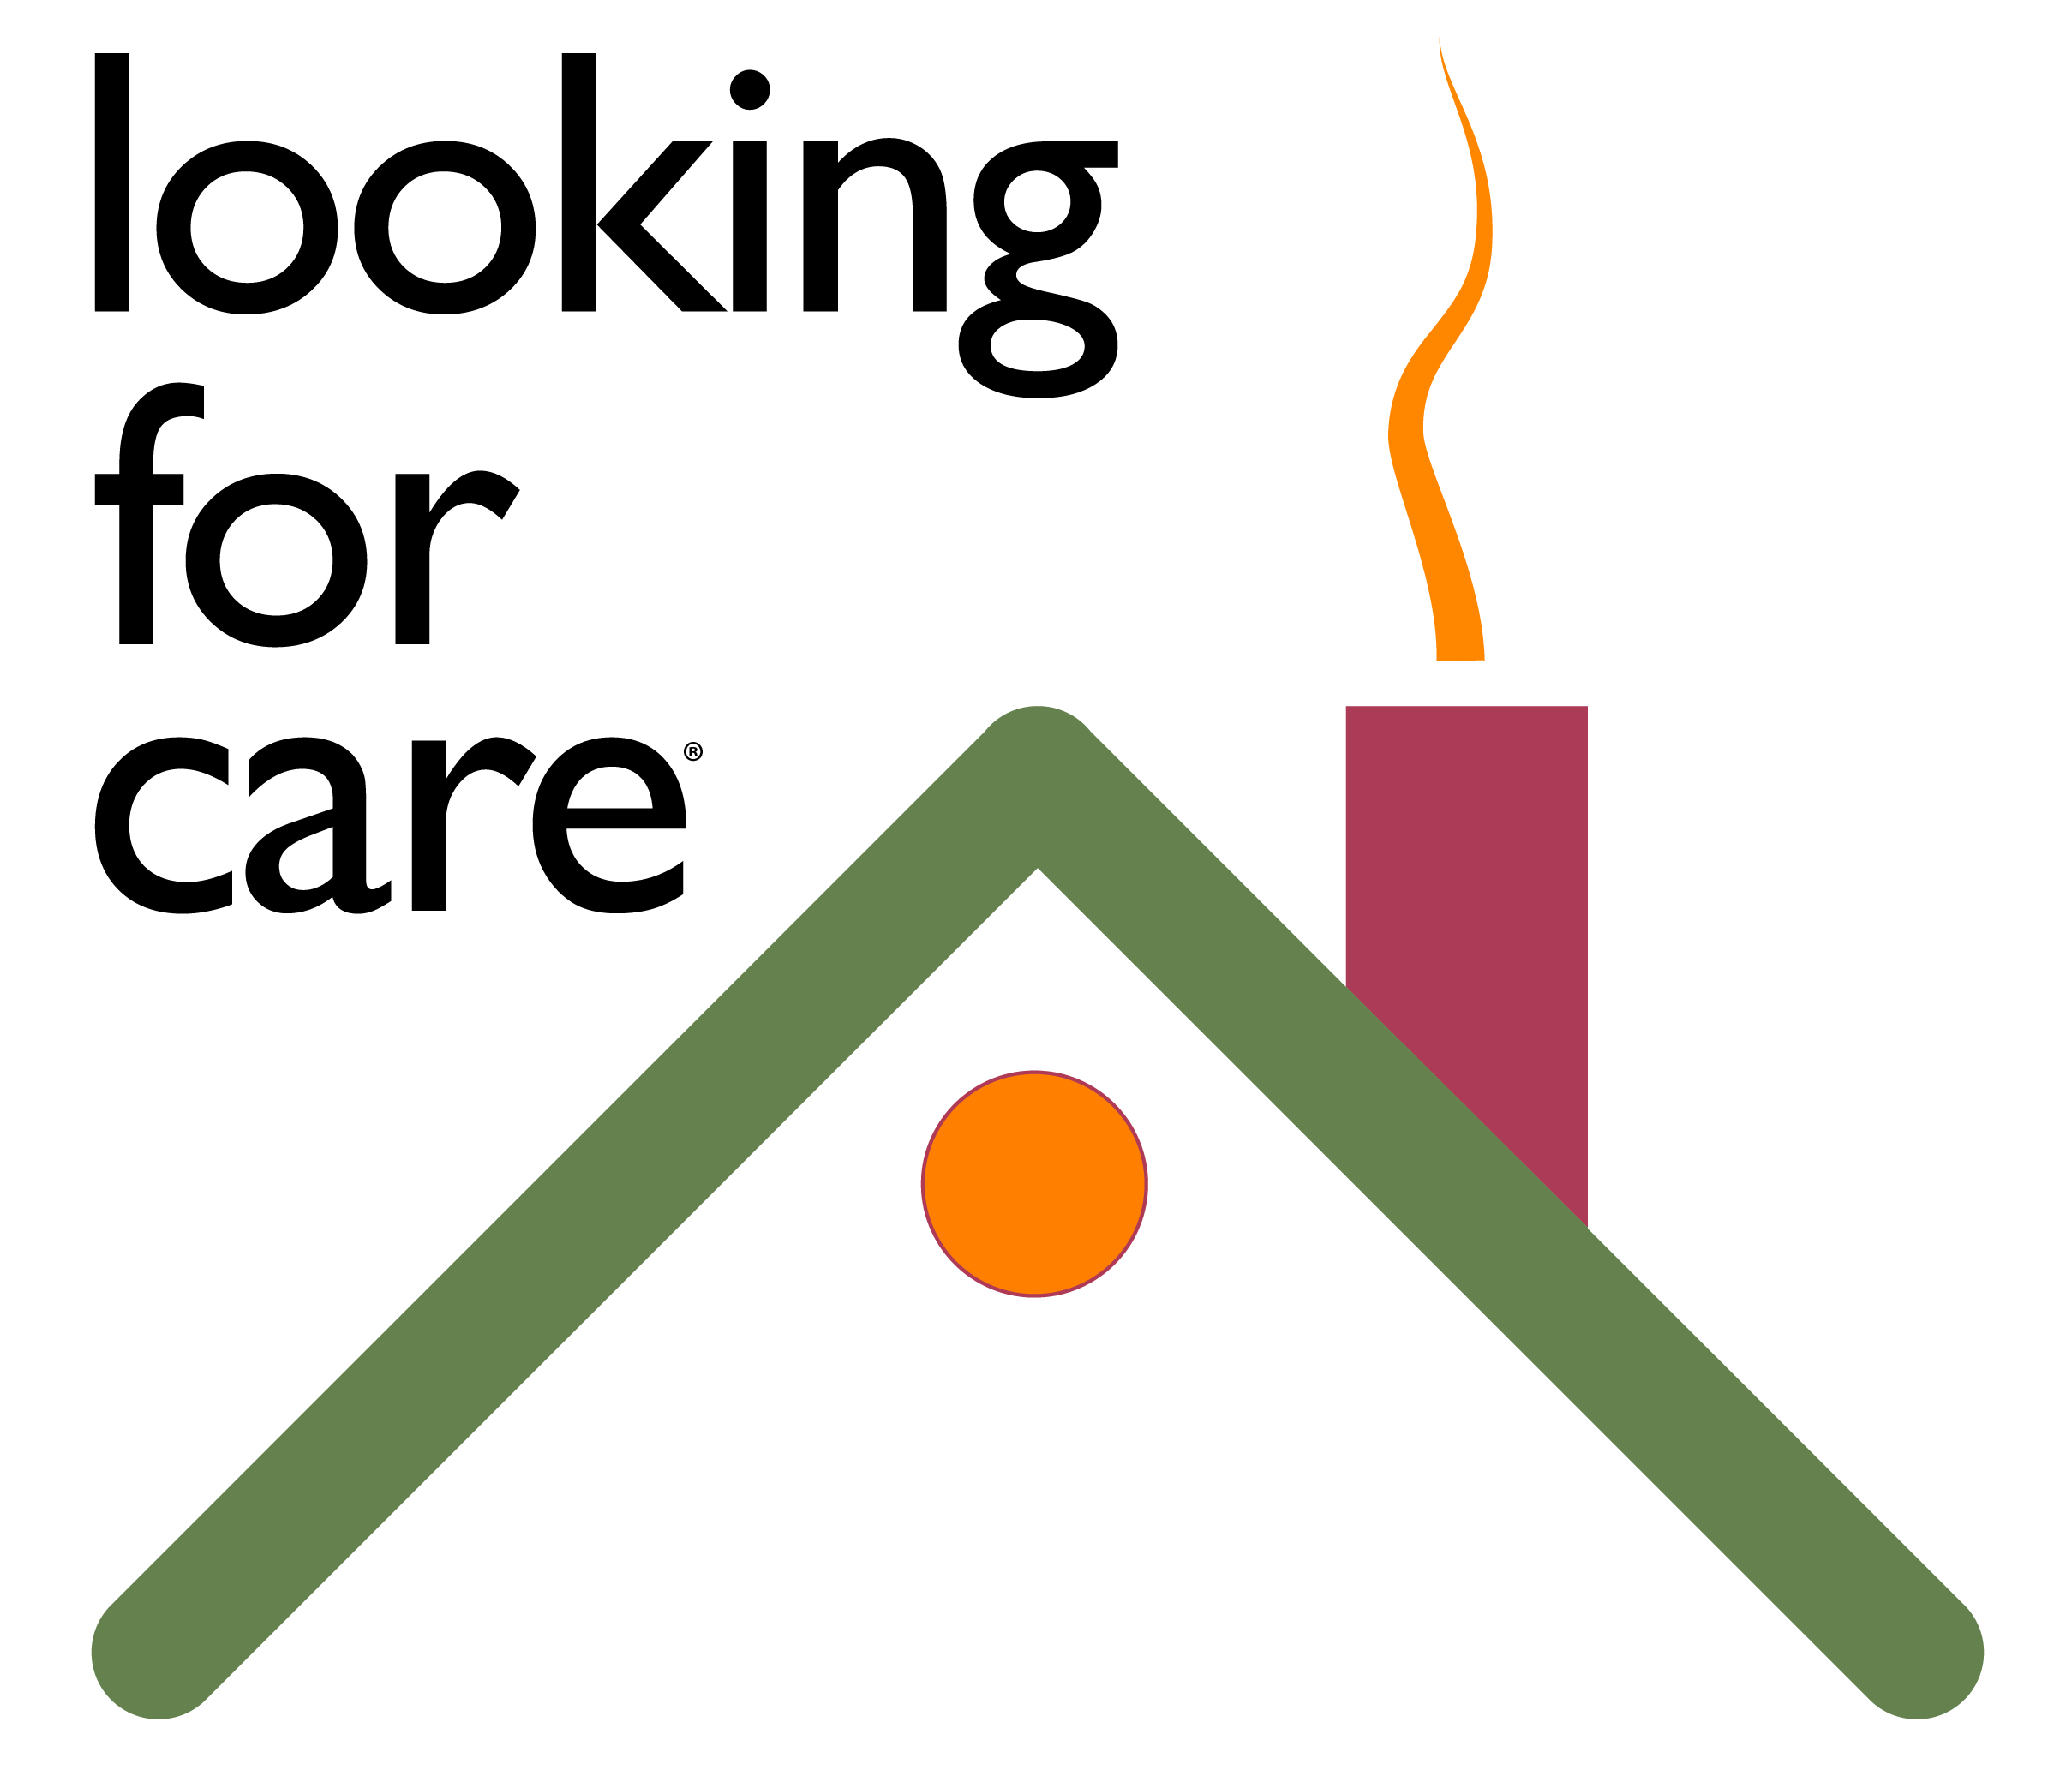 Looking for Care, Inc.